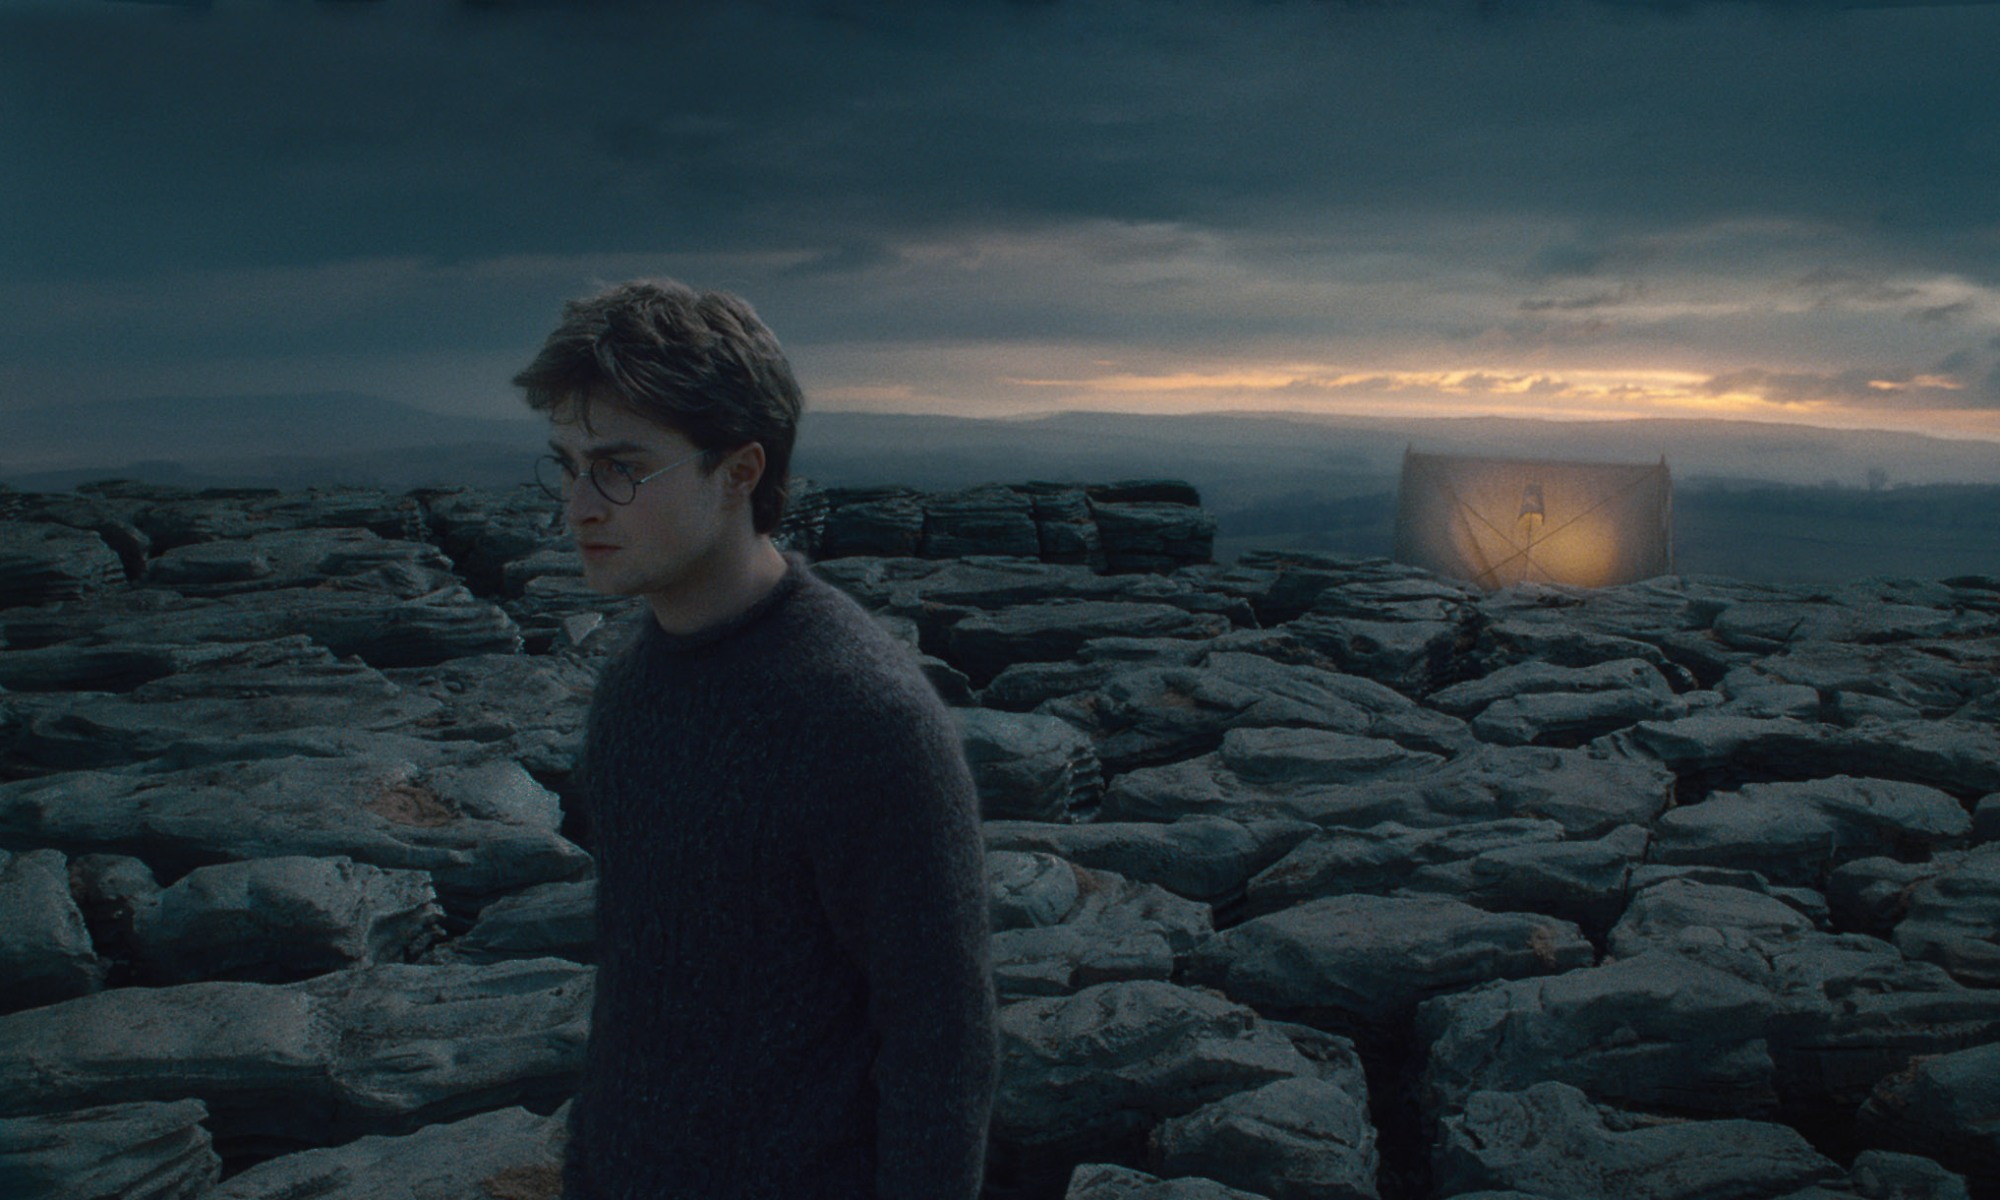 The 5 Most Iconic Moments In 'Harry Potter And The Deathly Hallows - Part 1'